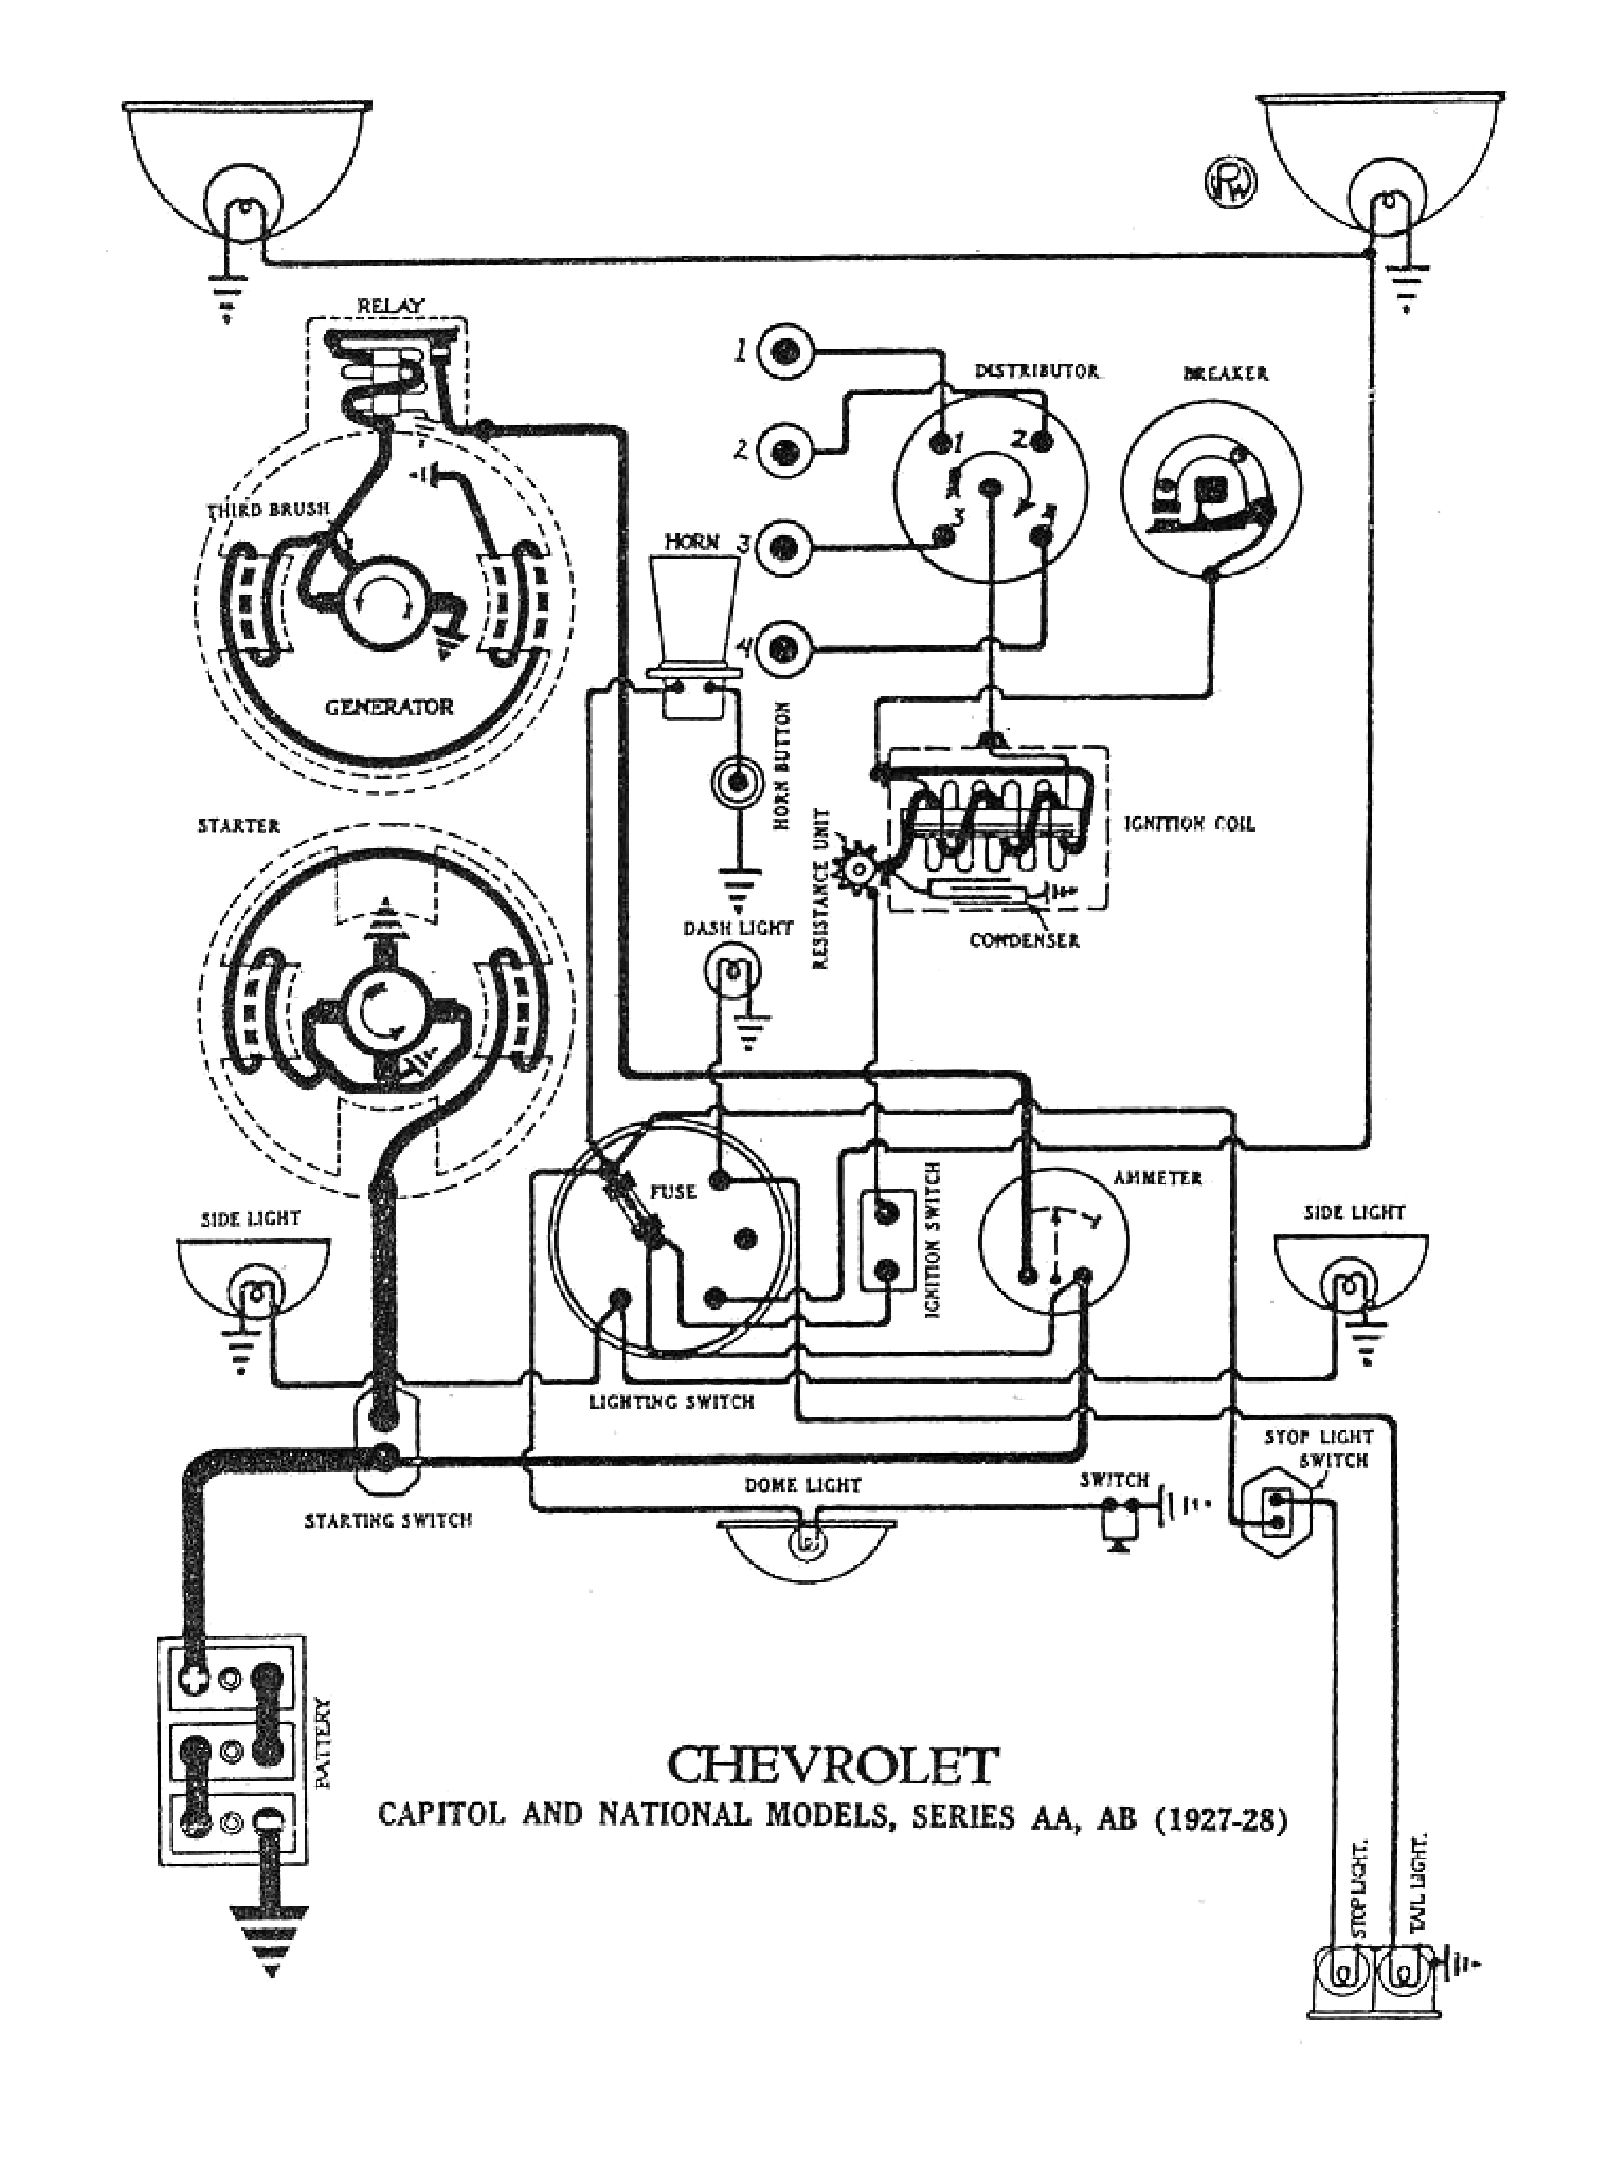 Ford 289 Engine Specs Diagram Wiring Library Chevy Harness Image Details 1946 Distributor Schematics Coil Diagrams Electronic